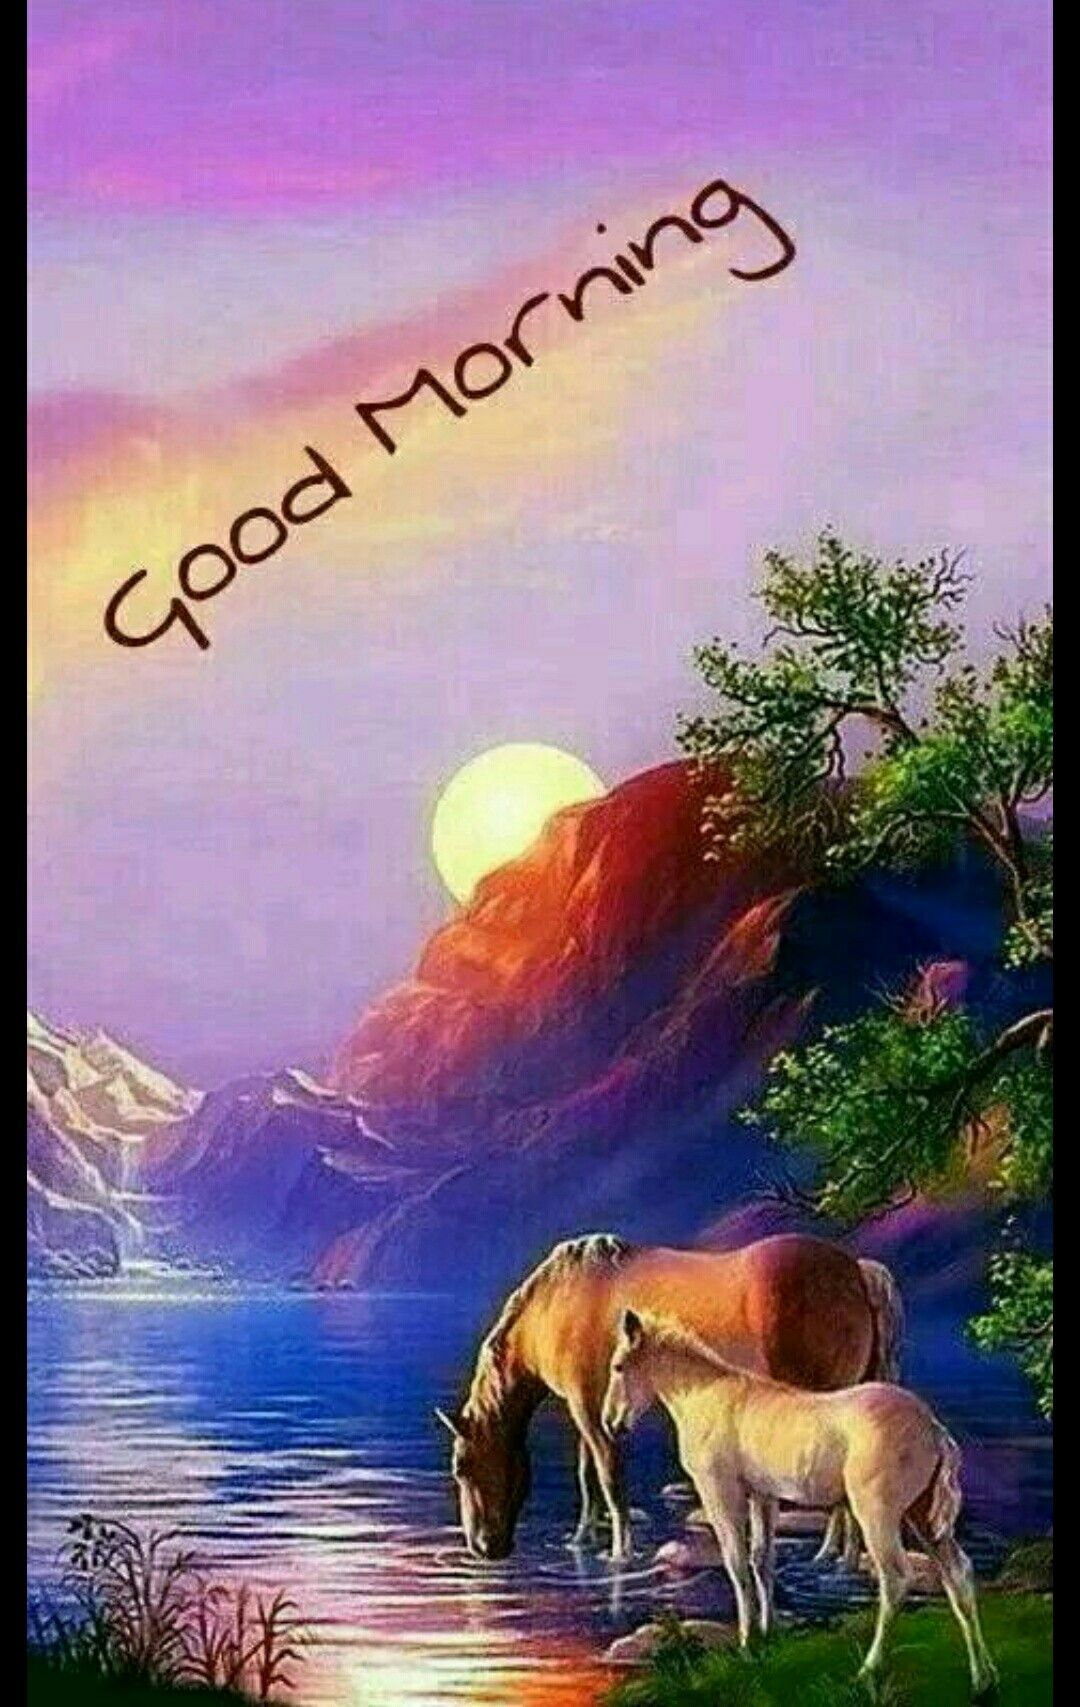 Pin by gopesh avasthi on morning pinterest morning greetings waking up is always a good morning m4hsunfo